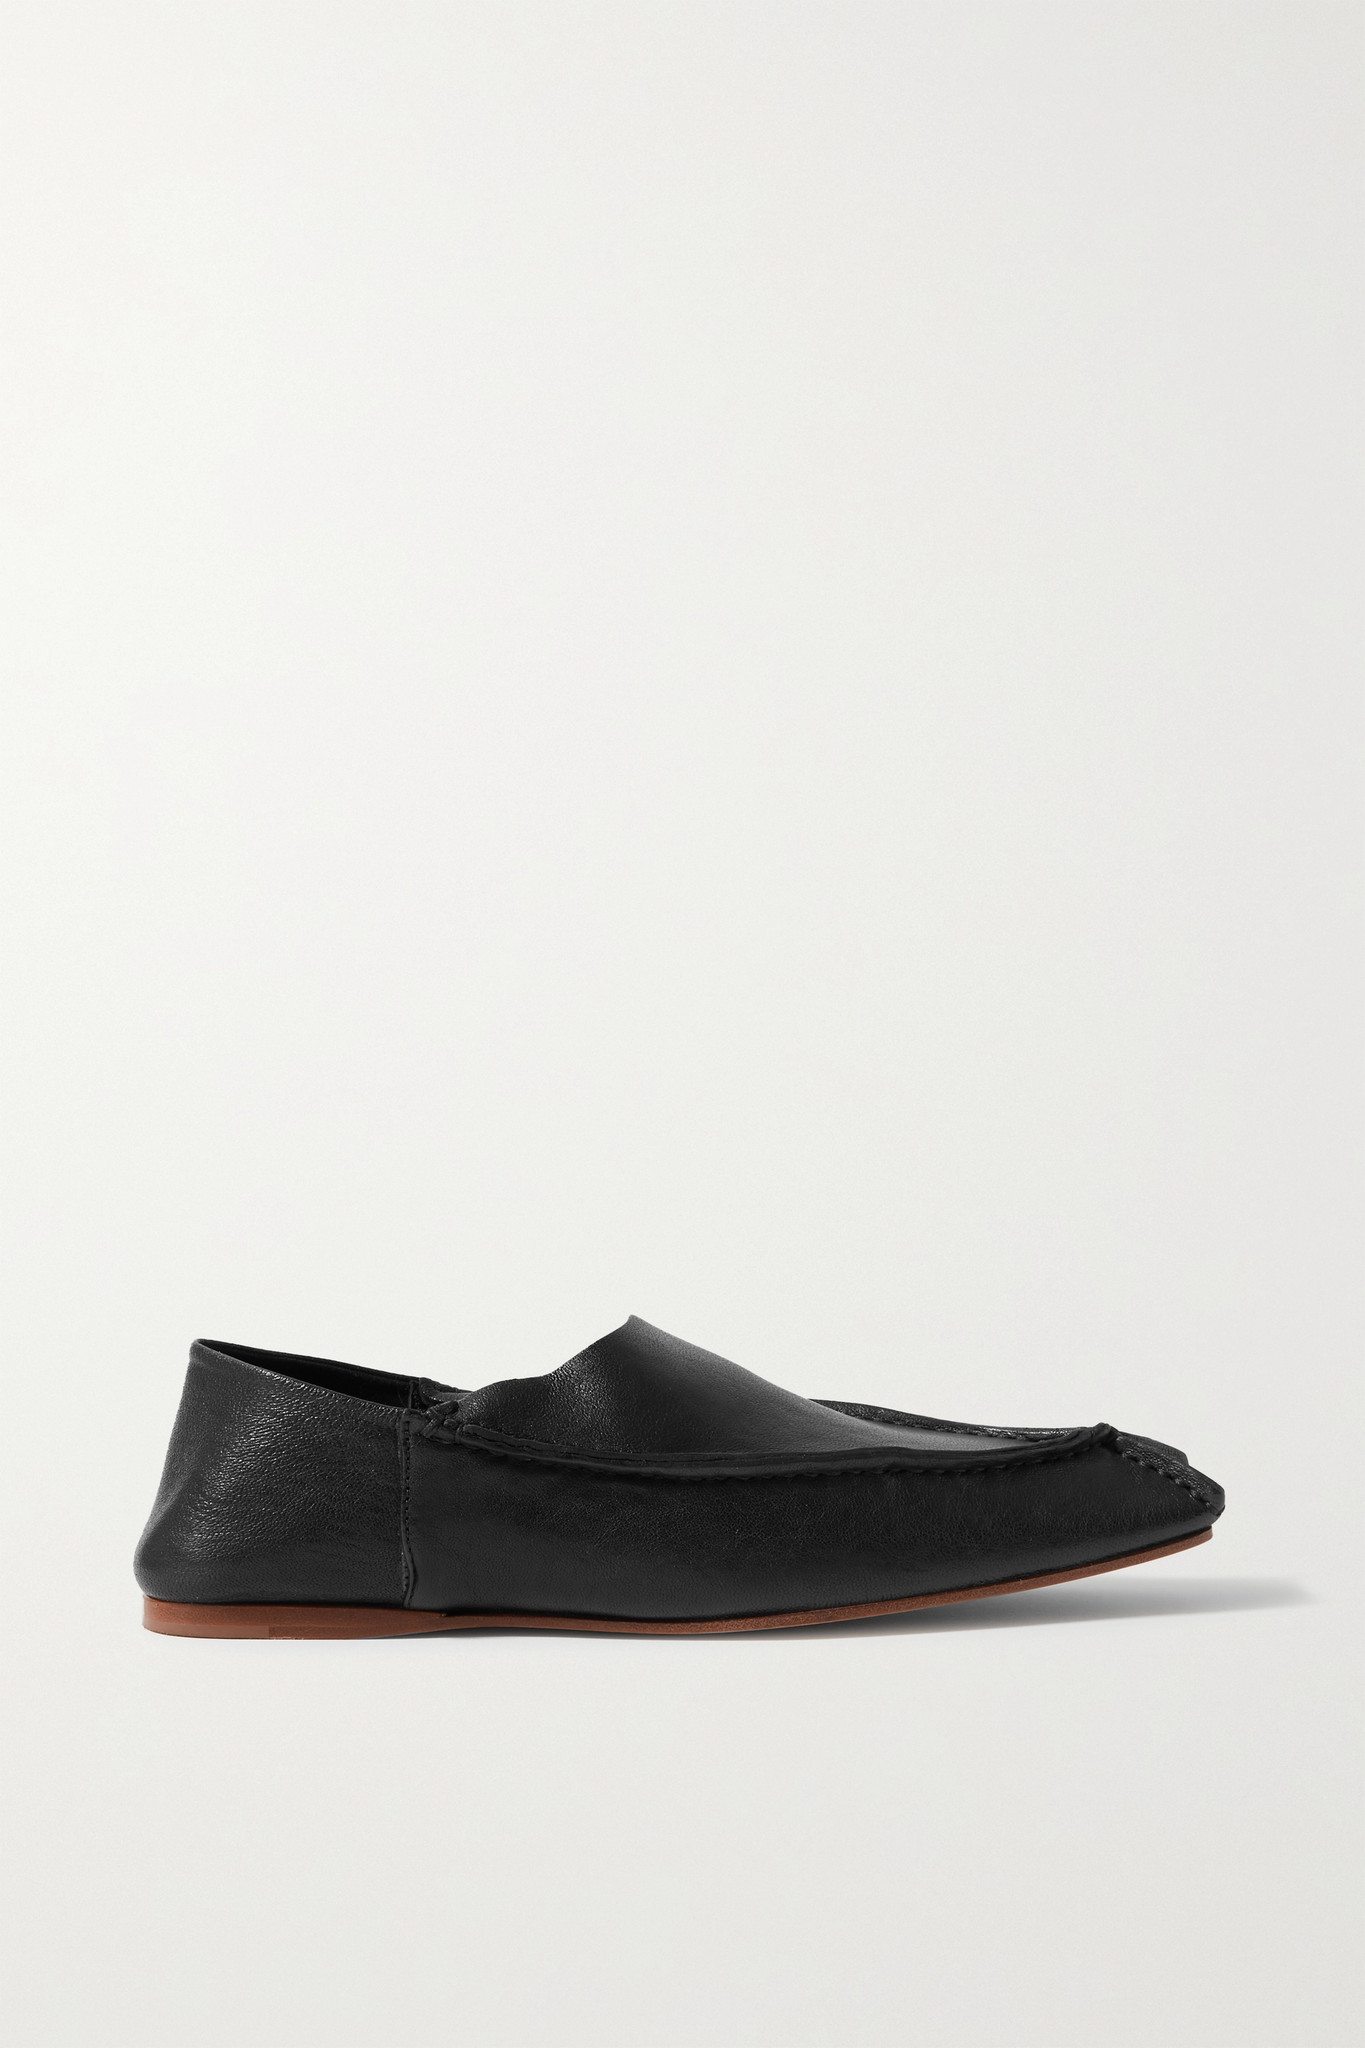 ACNE STUDIOS - Leather Collapsible-heel Loafers - Black - IT37